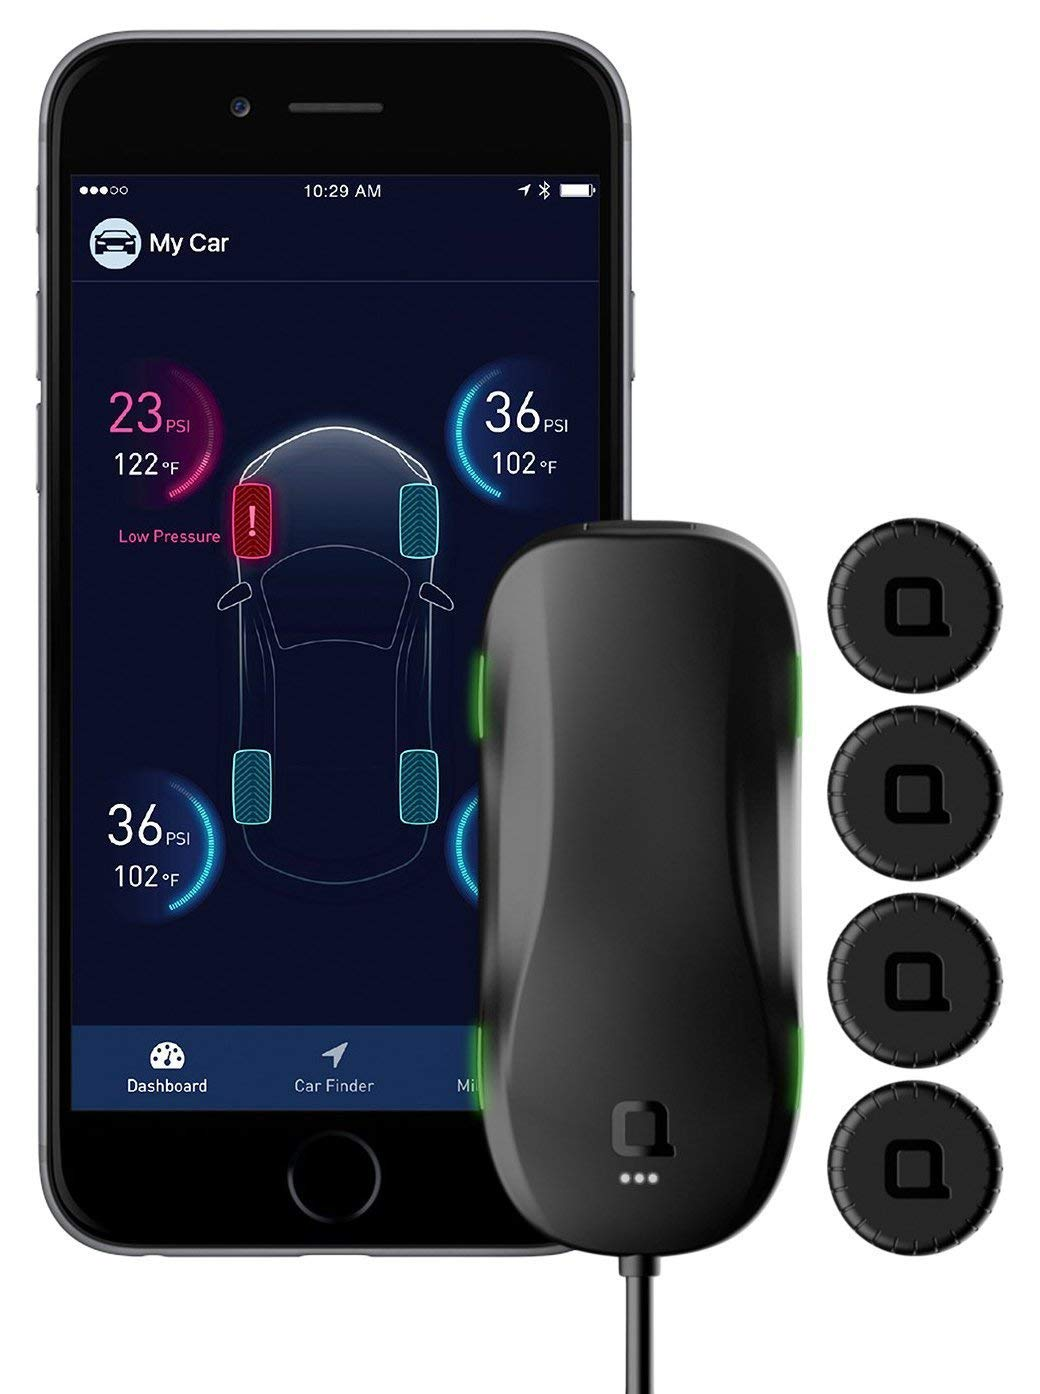 Nonda Zus Smart Tire Safety Monitor, Slow Leak Detection with AccurateTemp Technology, Real-Time Tire Pressure & Temperature Data, 10 Mins Self-Instal